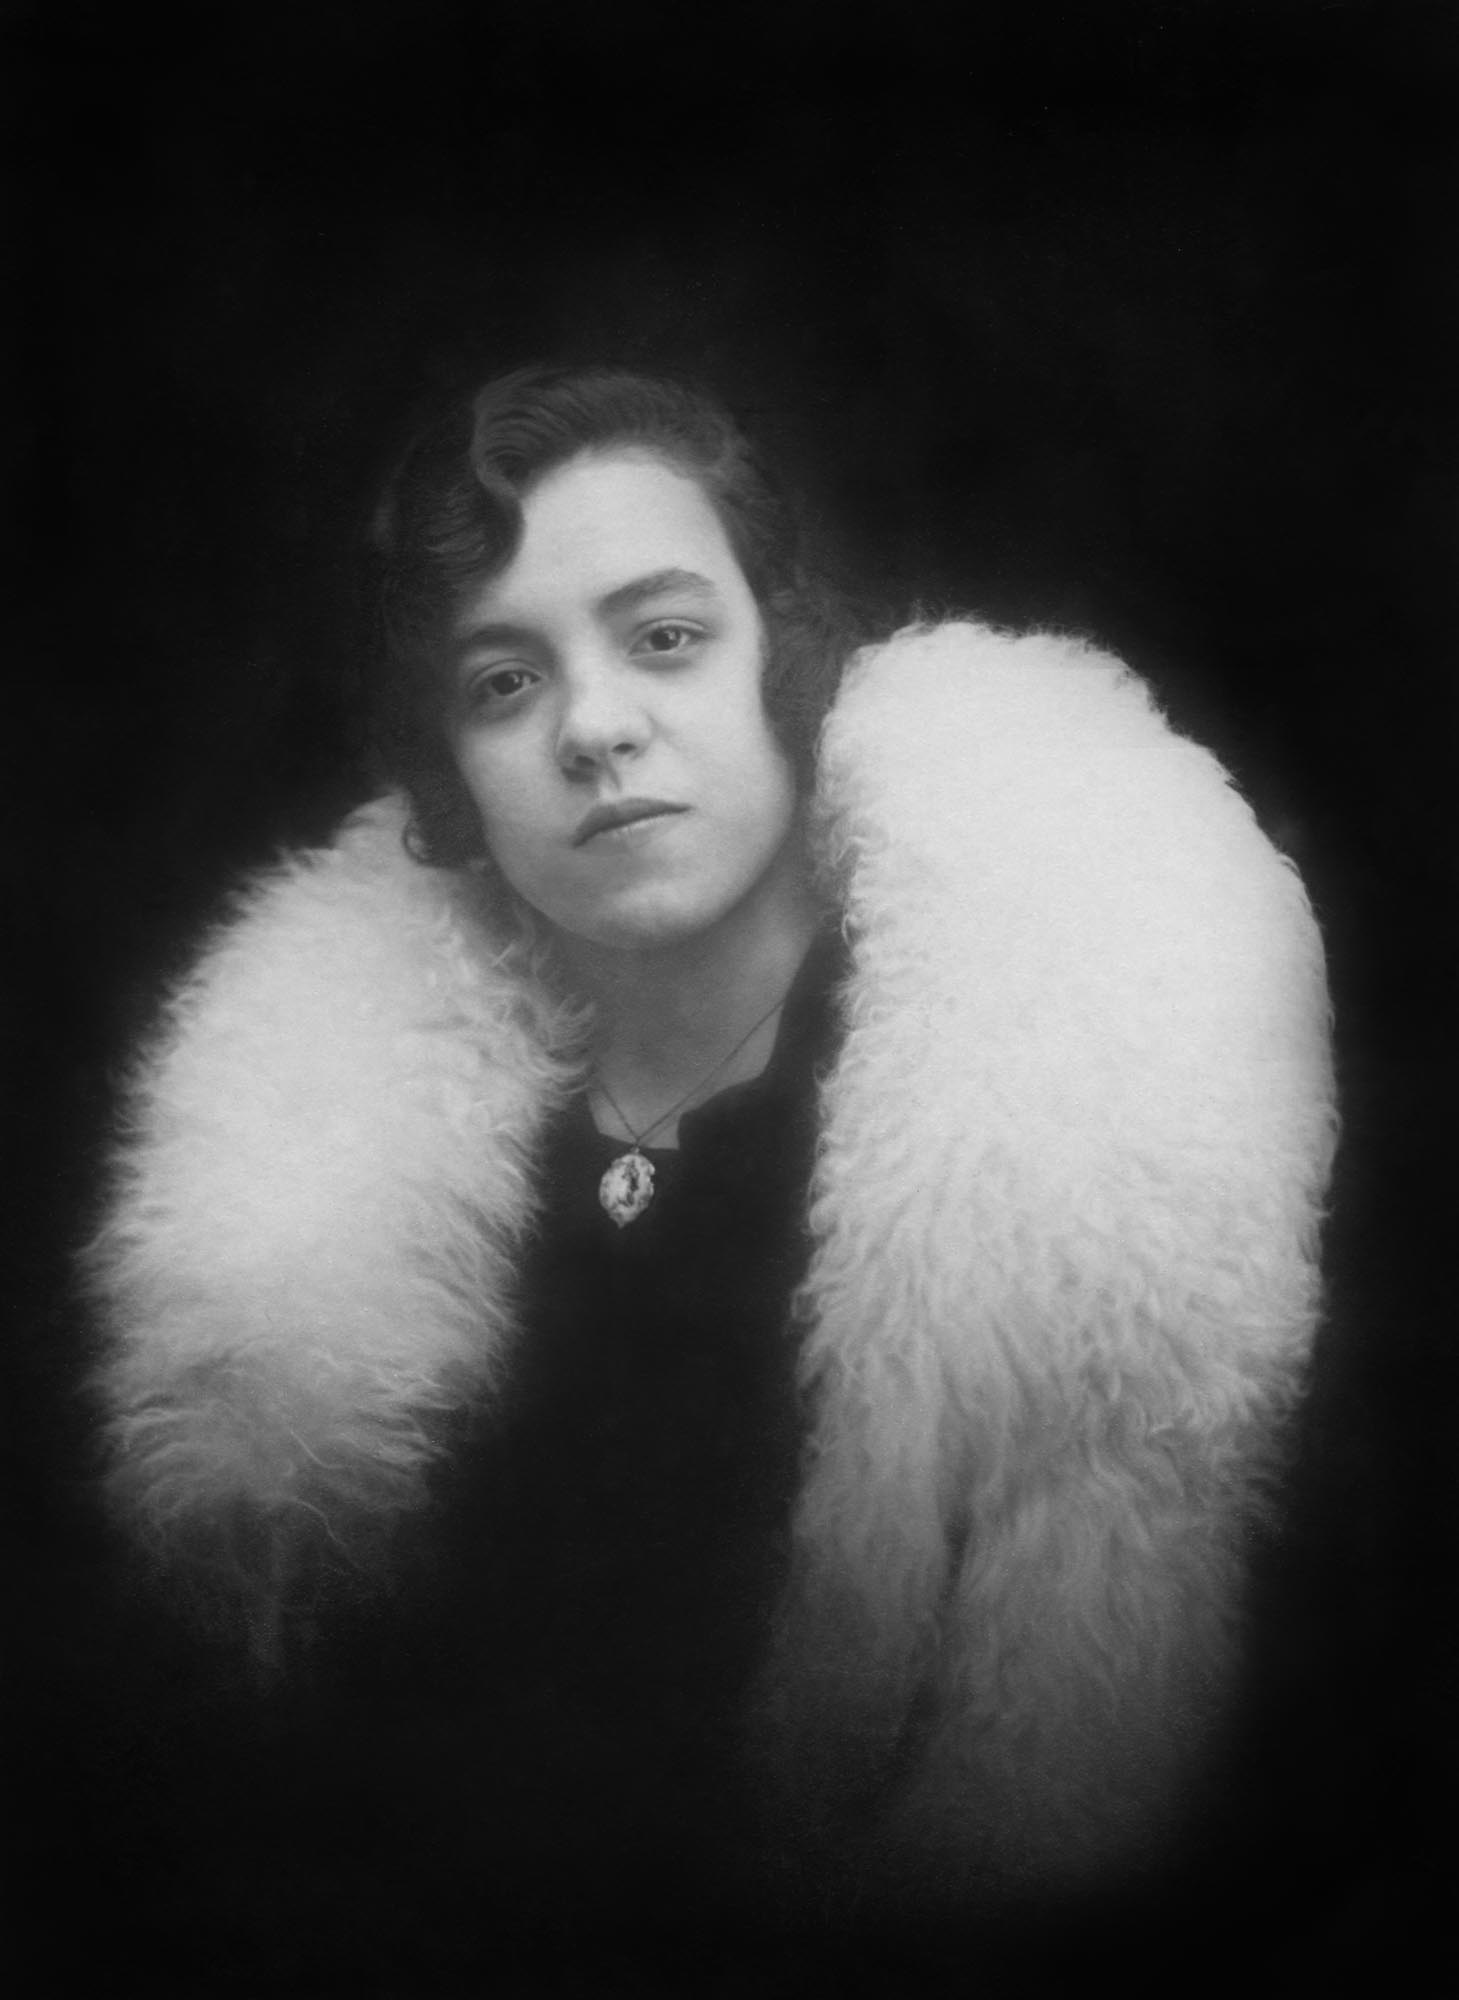 Don't Mess with Me, Sweetheart - circa 1920's